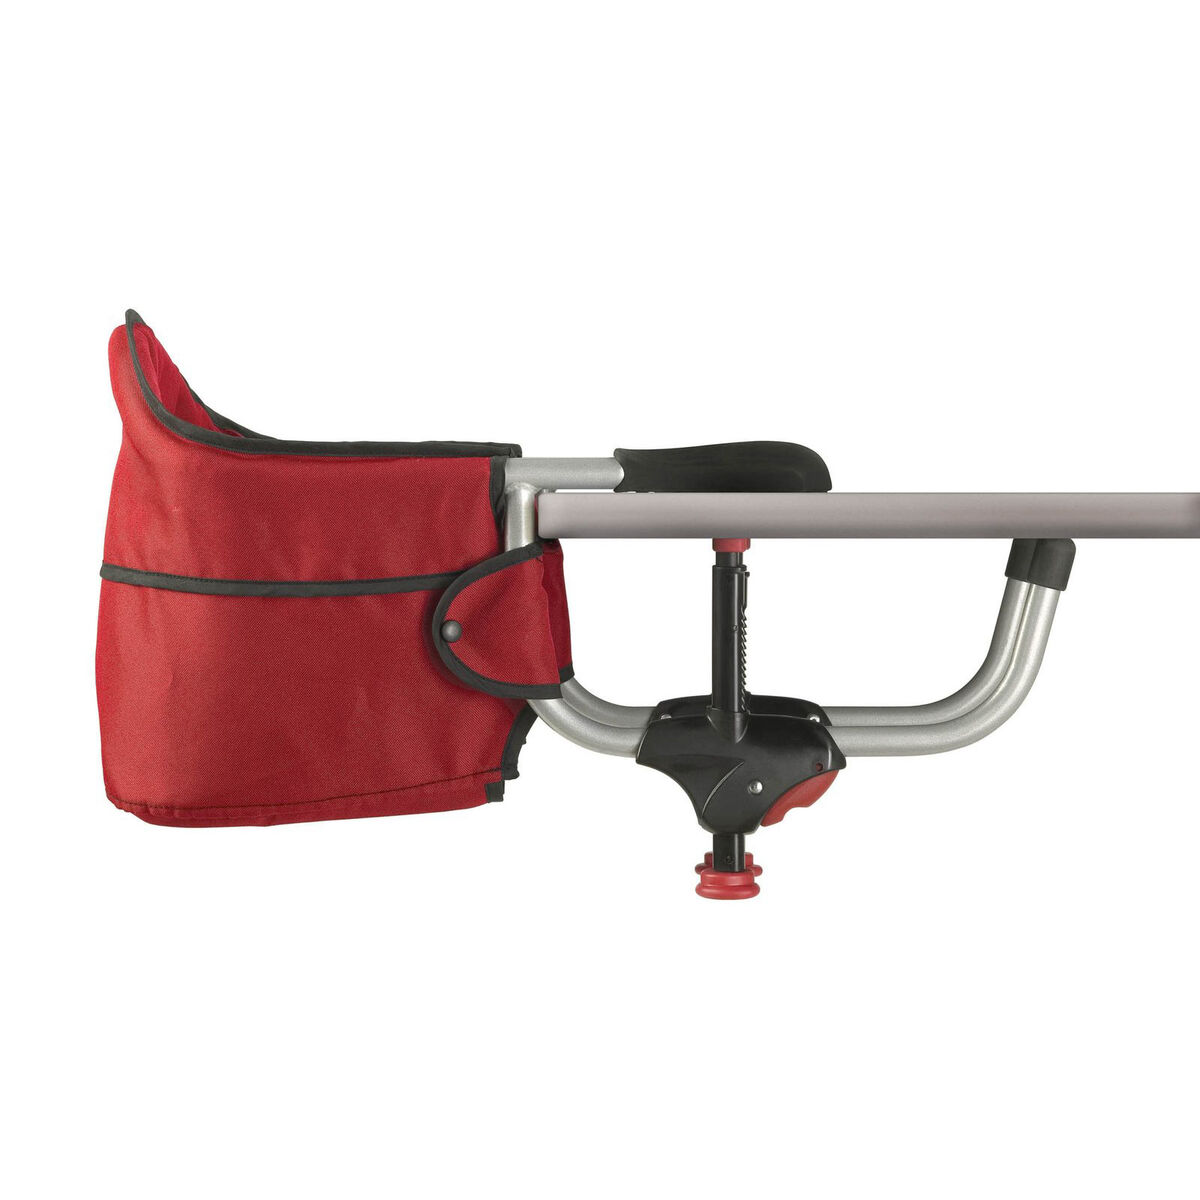 Baby eating chair attached to table - Chicco Caddy Hook On Chair Redcaddy Hook On Chair Red